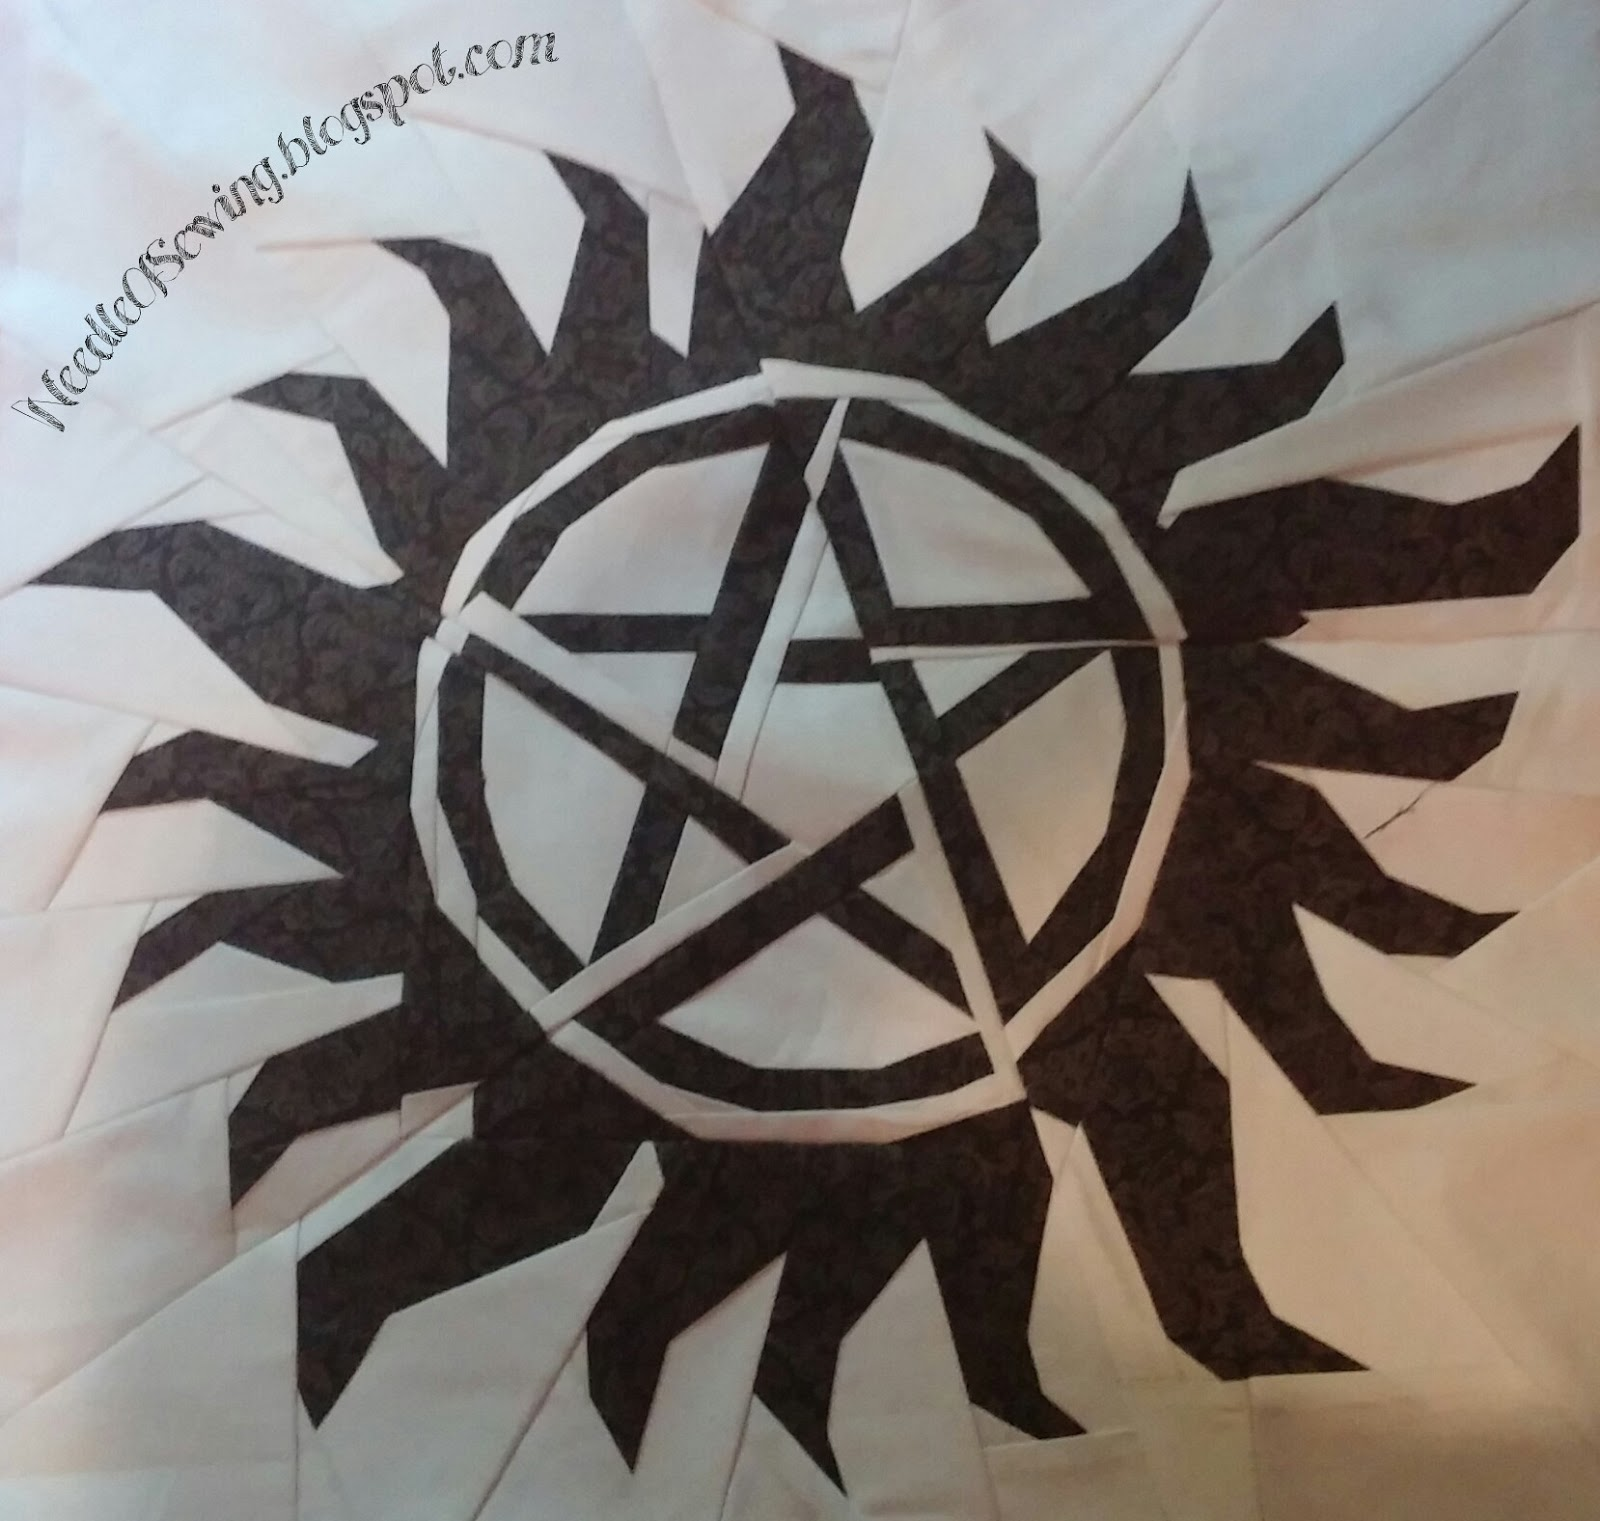 Needle Of Sewing 3 Supernatural Quilt Anti Possession Tattoo